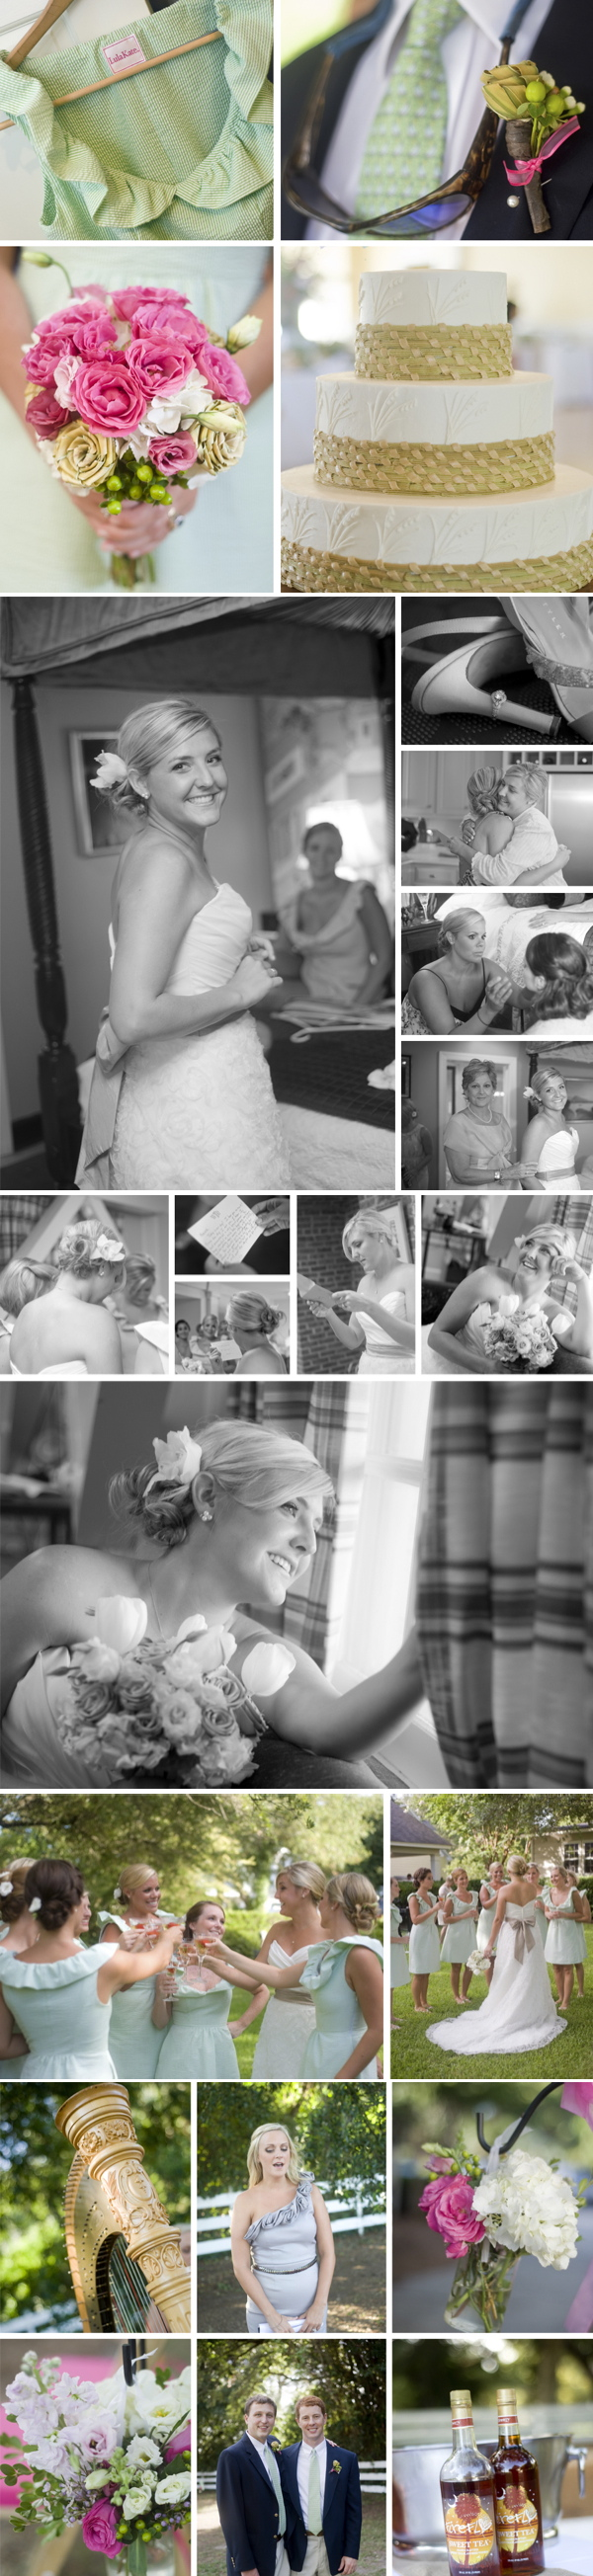 Alhambra Hall Wedding